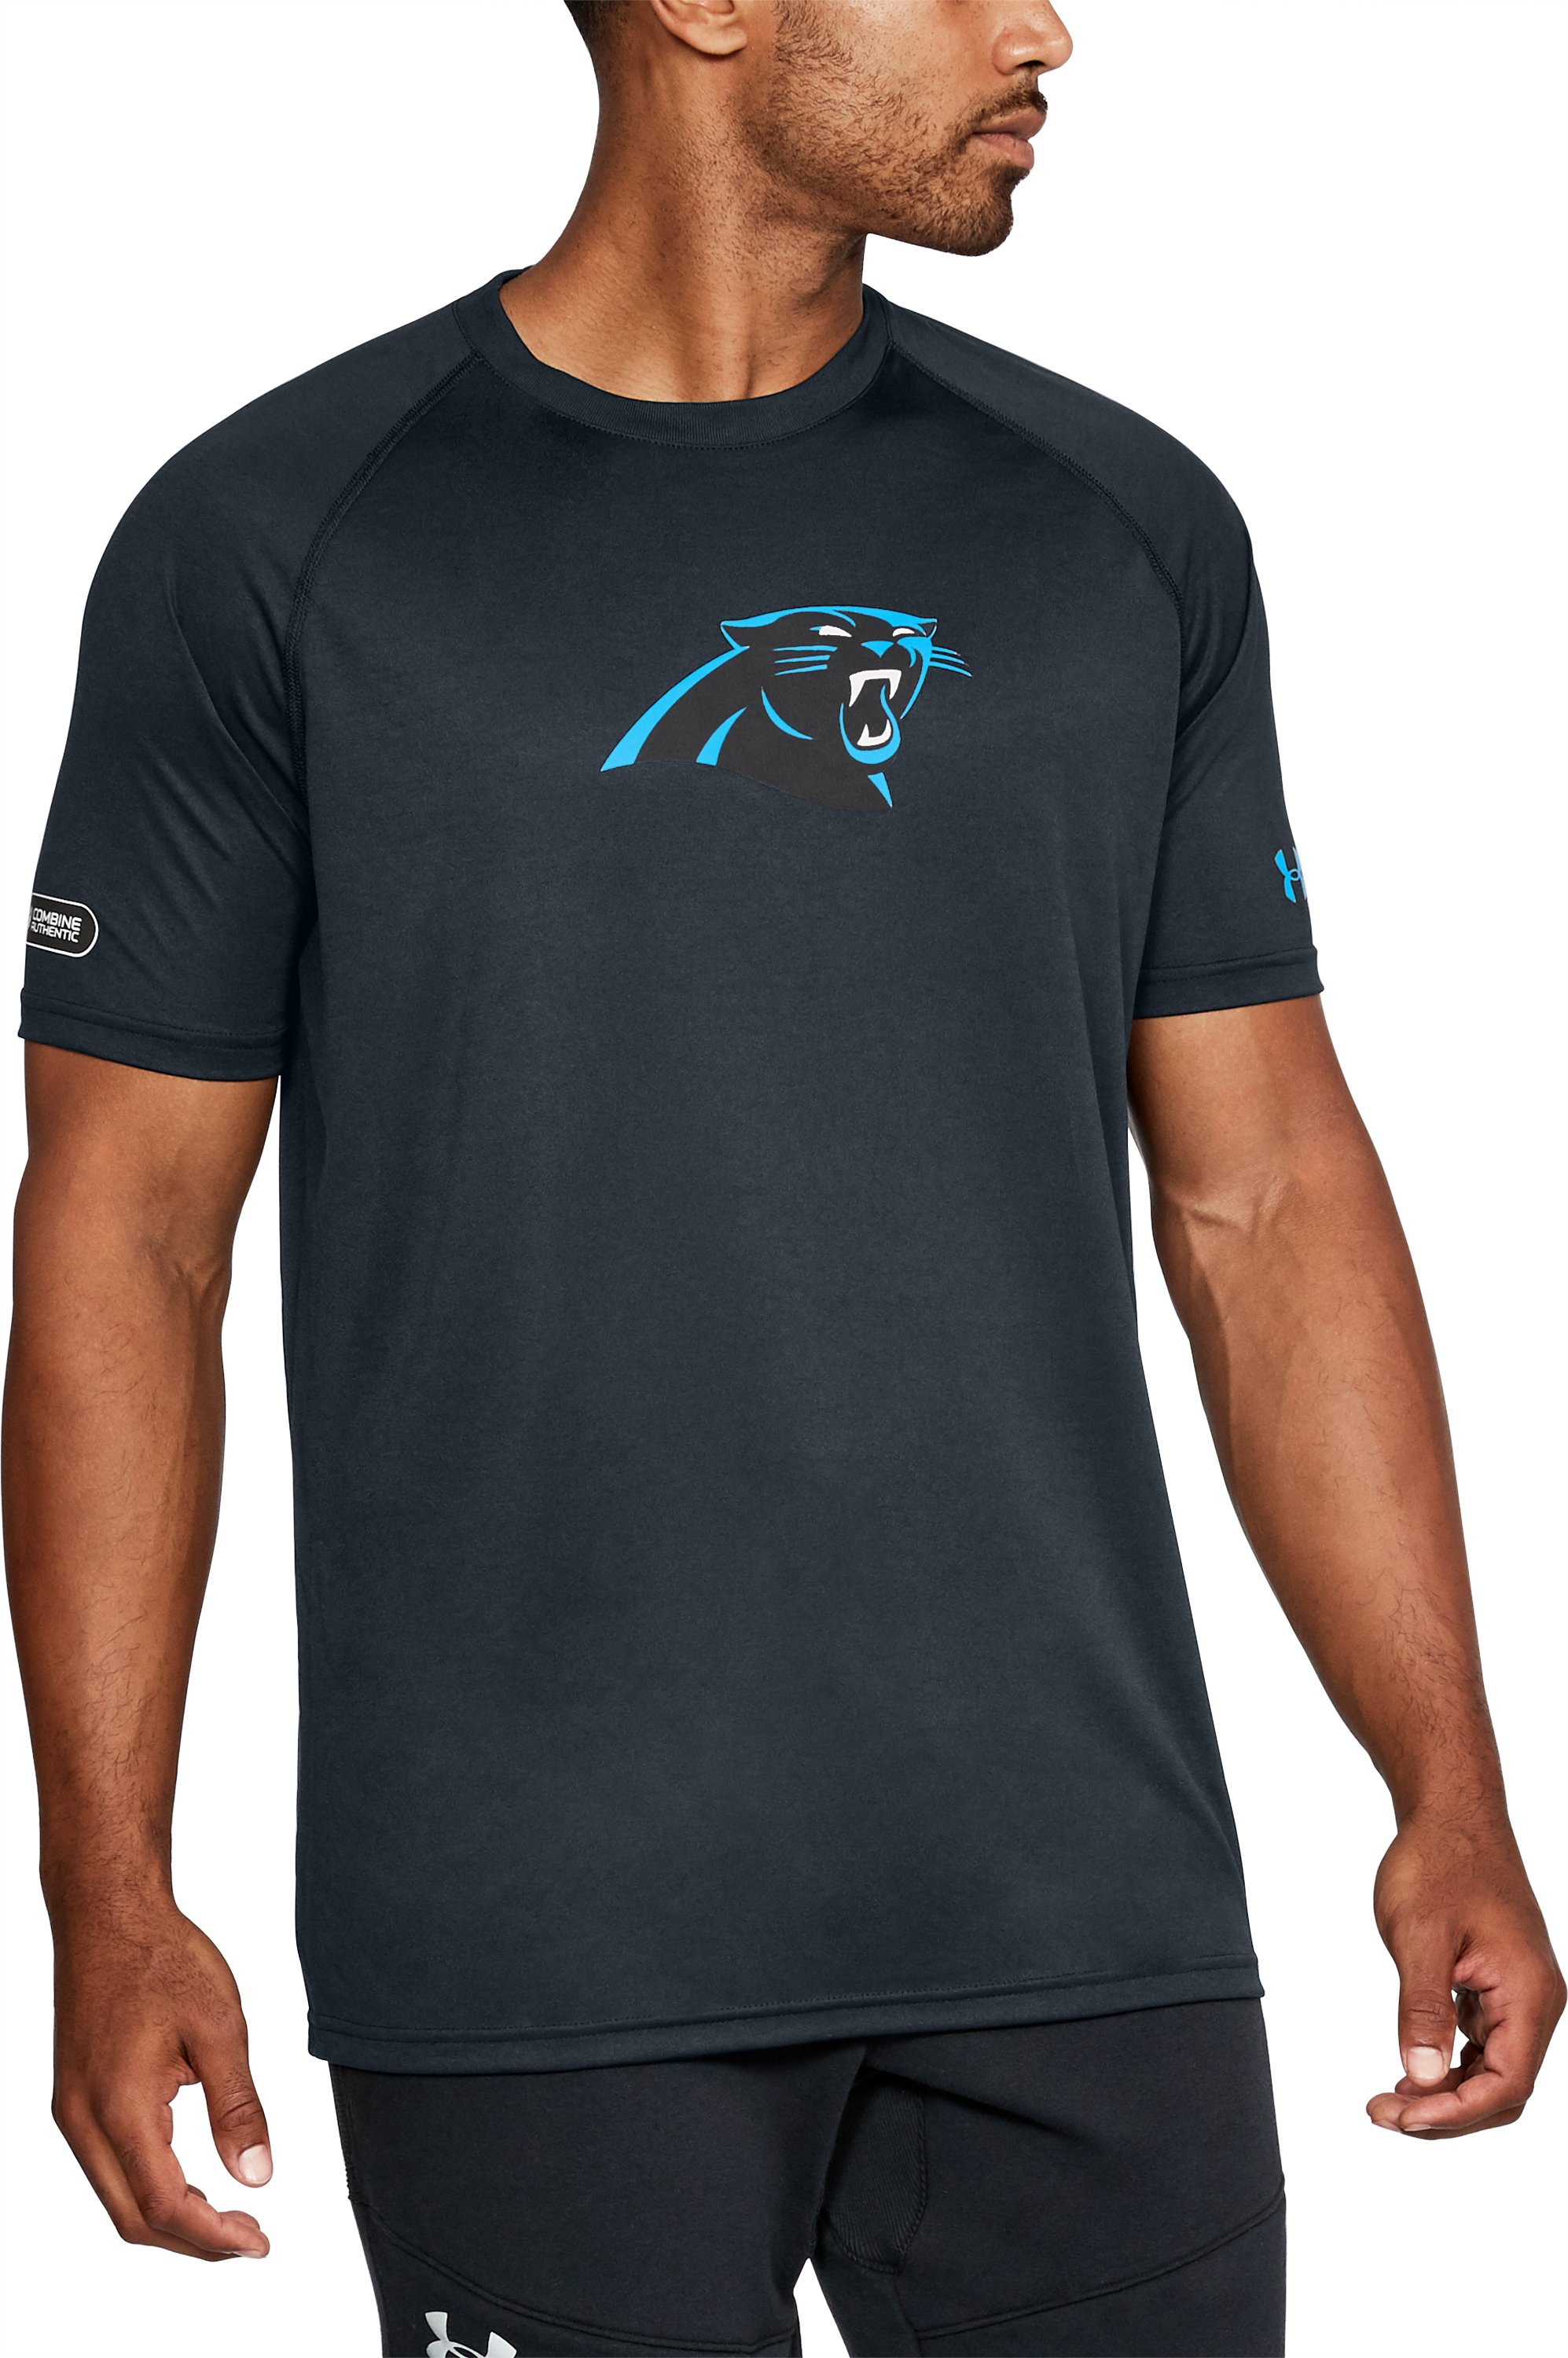 , Carolina Panthers, zoomed image